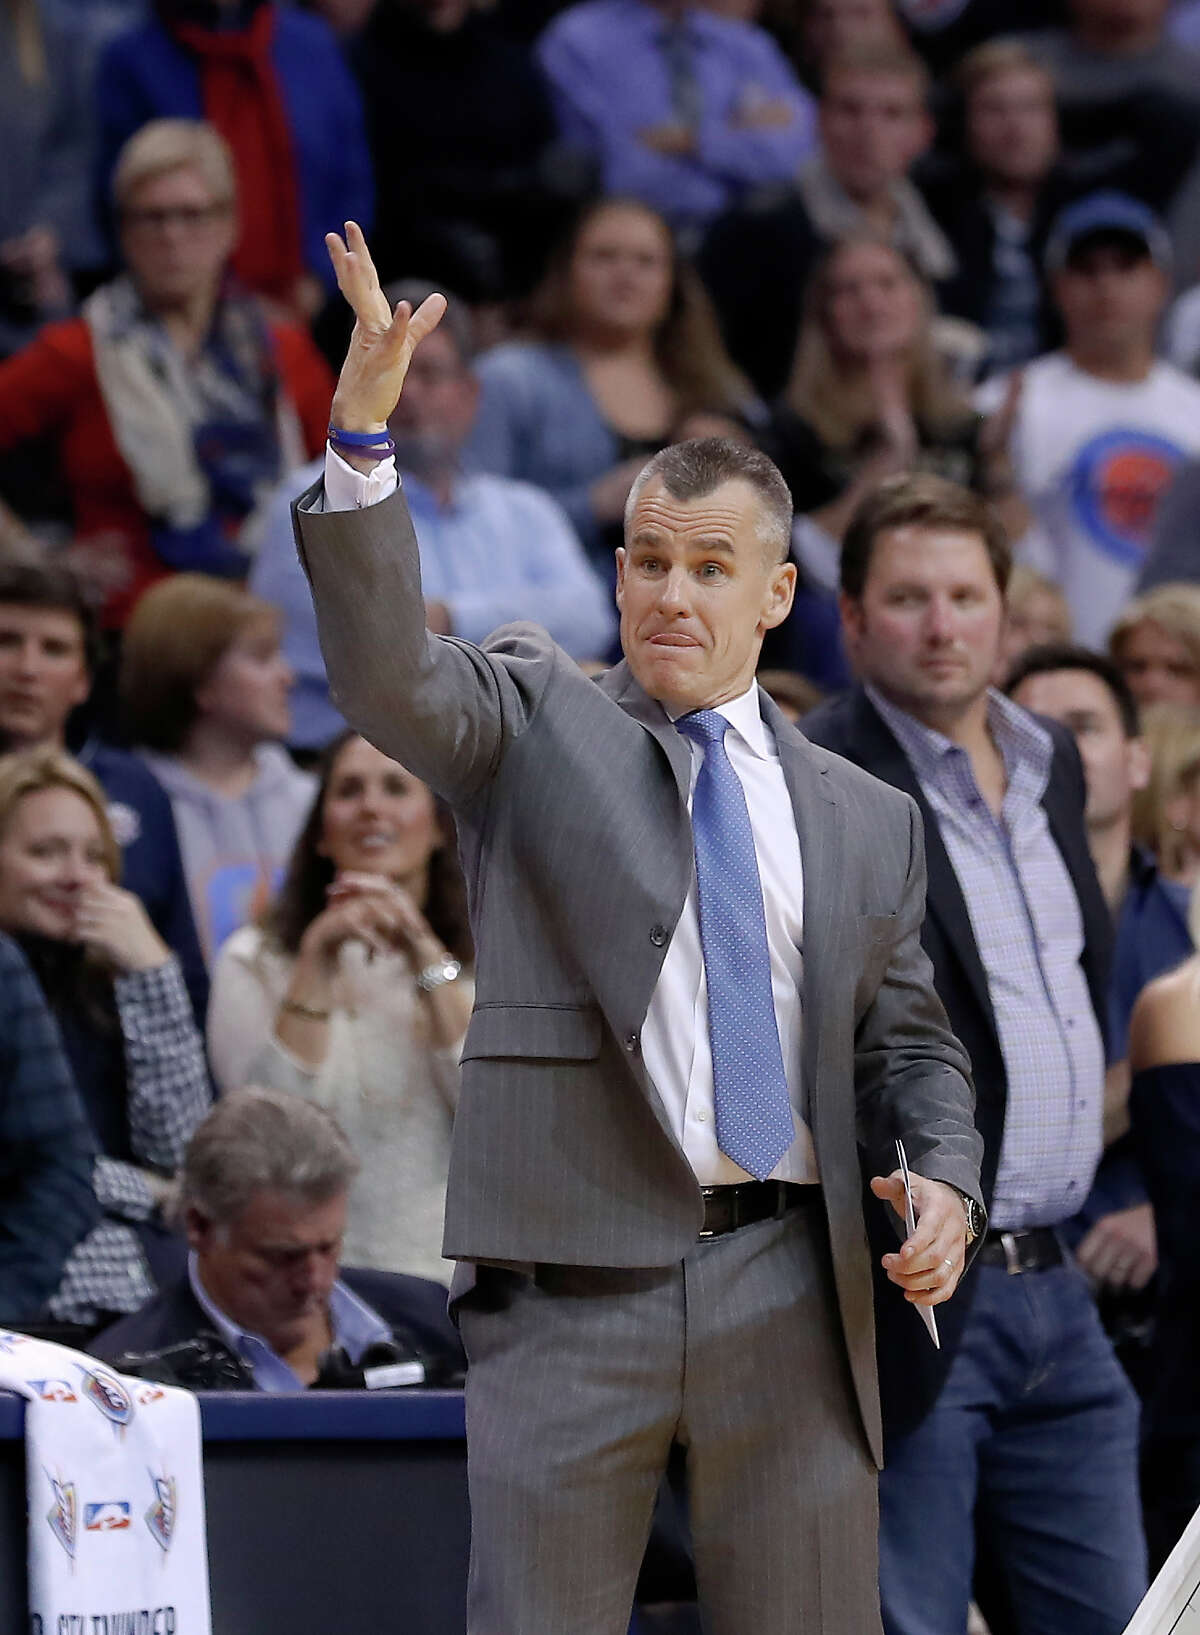 Oklahoma City Thunder head coach Billy Donovan reacts during a play against the Houston Rockets in the second half of an NBA basketball game in Oklahoma City, Friday, Dec. 9, 2016. (AP Photo/Alonzo Adams)